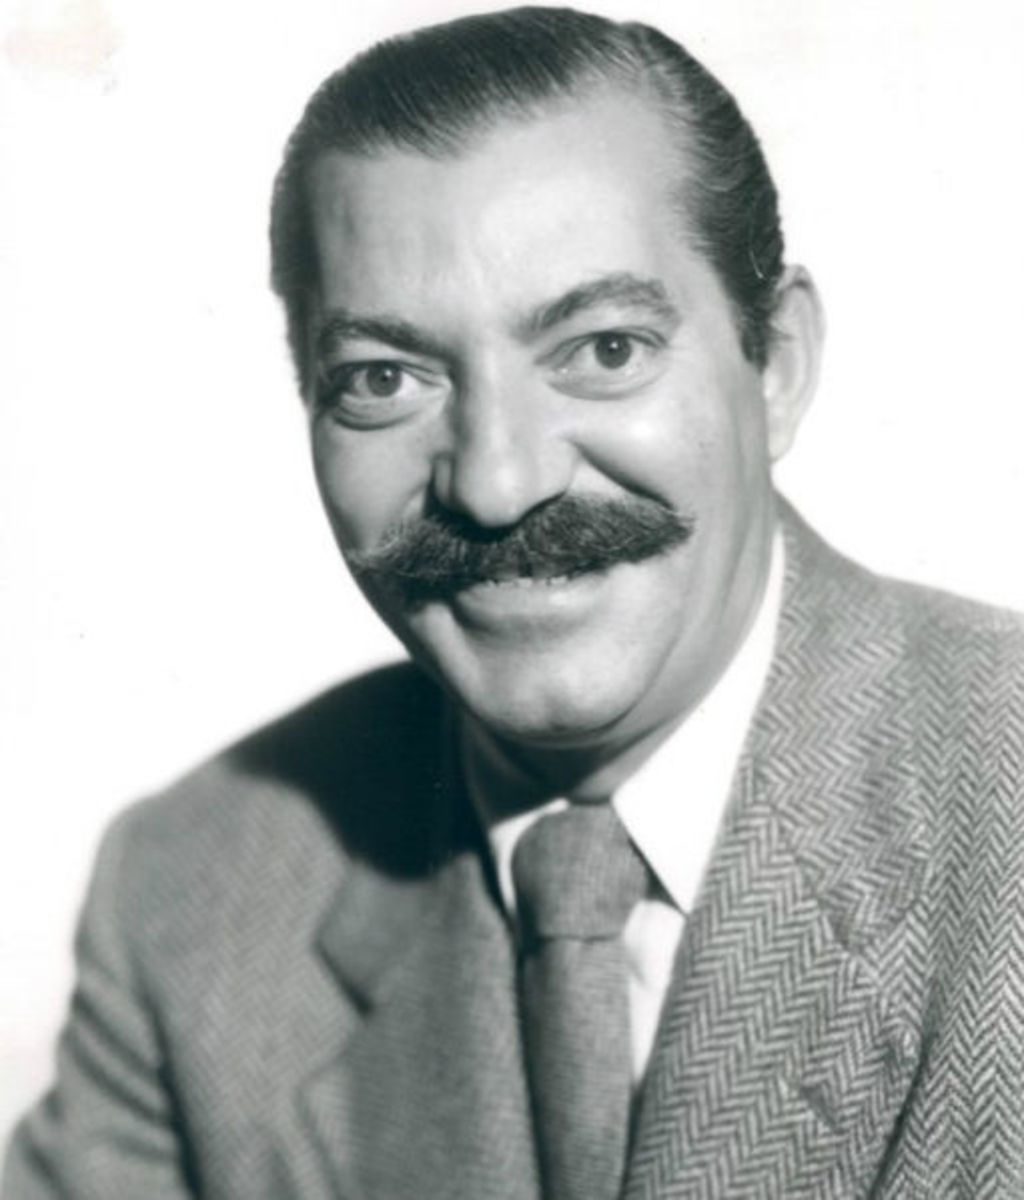 Comedian Jerry Colonna; 1951 in The Jerry Colonna Show on television.